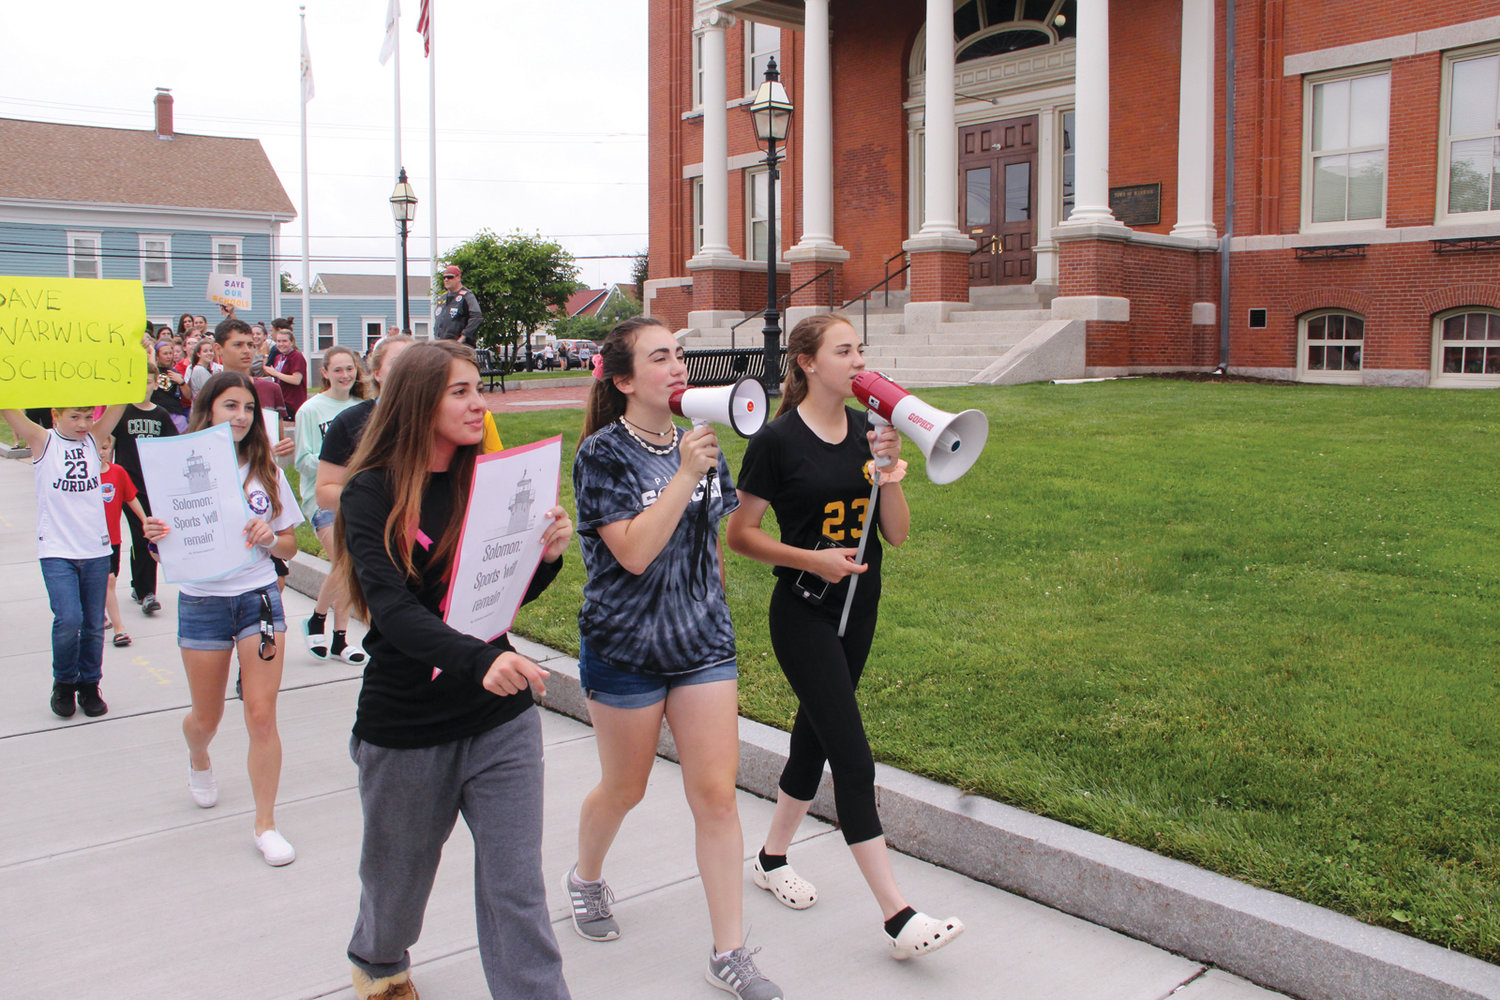 MARCHING ON CITY HALL: Pilgrim girls soccer players Janelle Mixner, Lindsay Flanders and Amelia Murphy led fellow student athletes in Wednesday's demonstration outside City Hall. As the group grew they entered the lobby of City Hall, only leaving after a delegation met with the mayor.